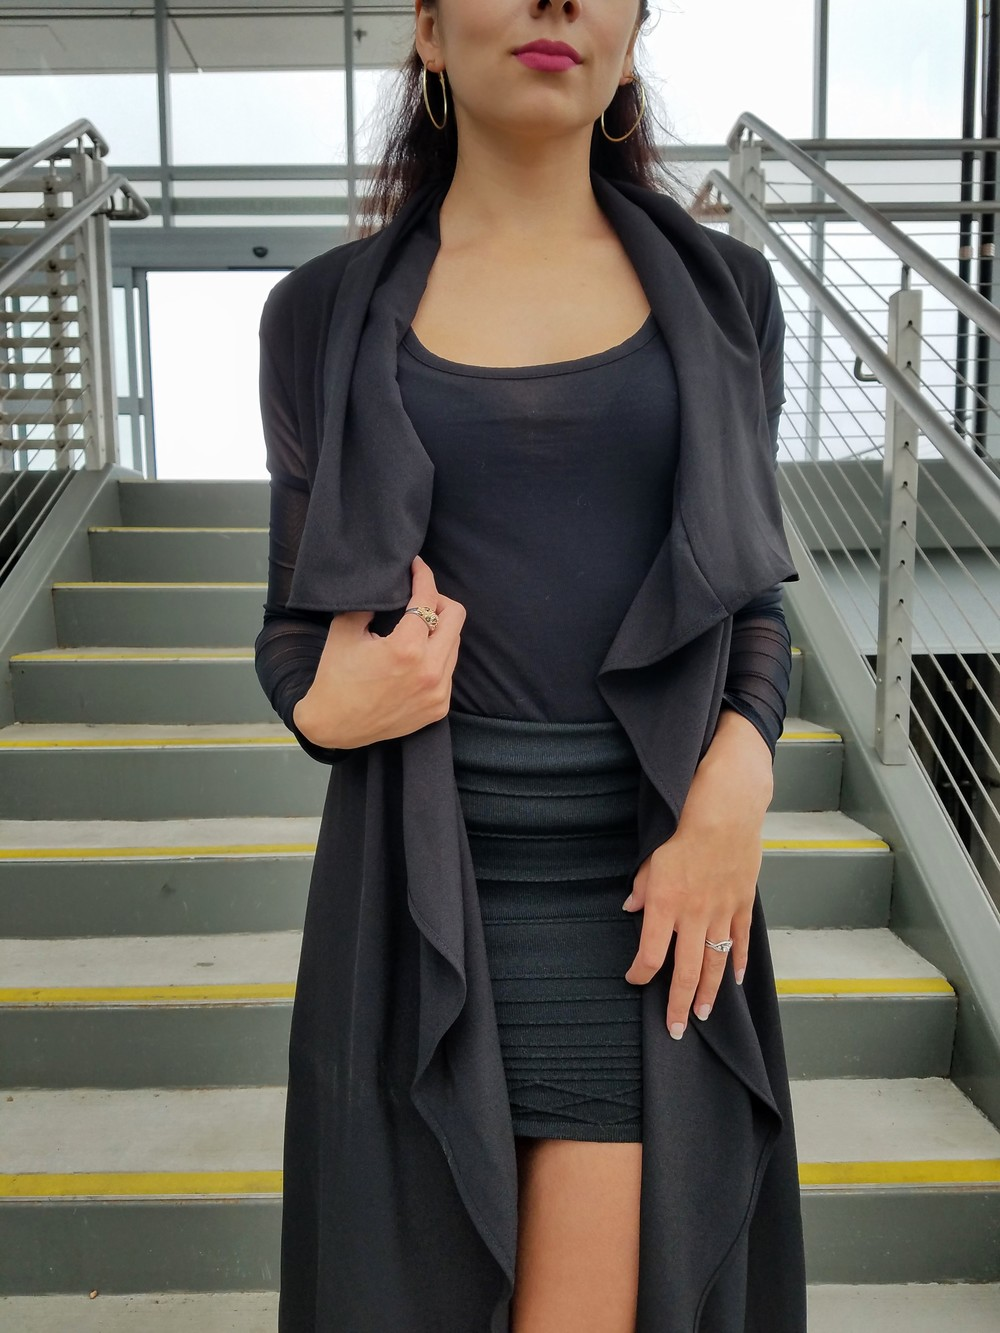 LifeOfArdor, all black outfit, zara heels, high heels, ootd, style, fashion, blogger, lifestyleblogger, fashionblogger